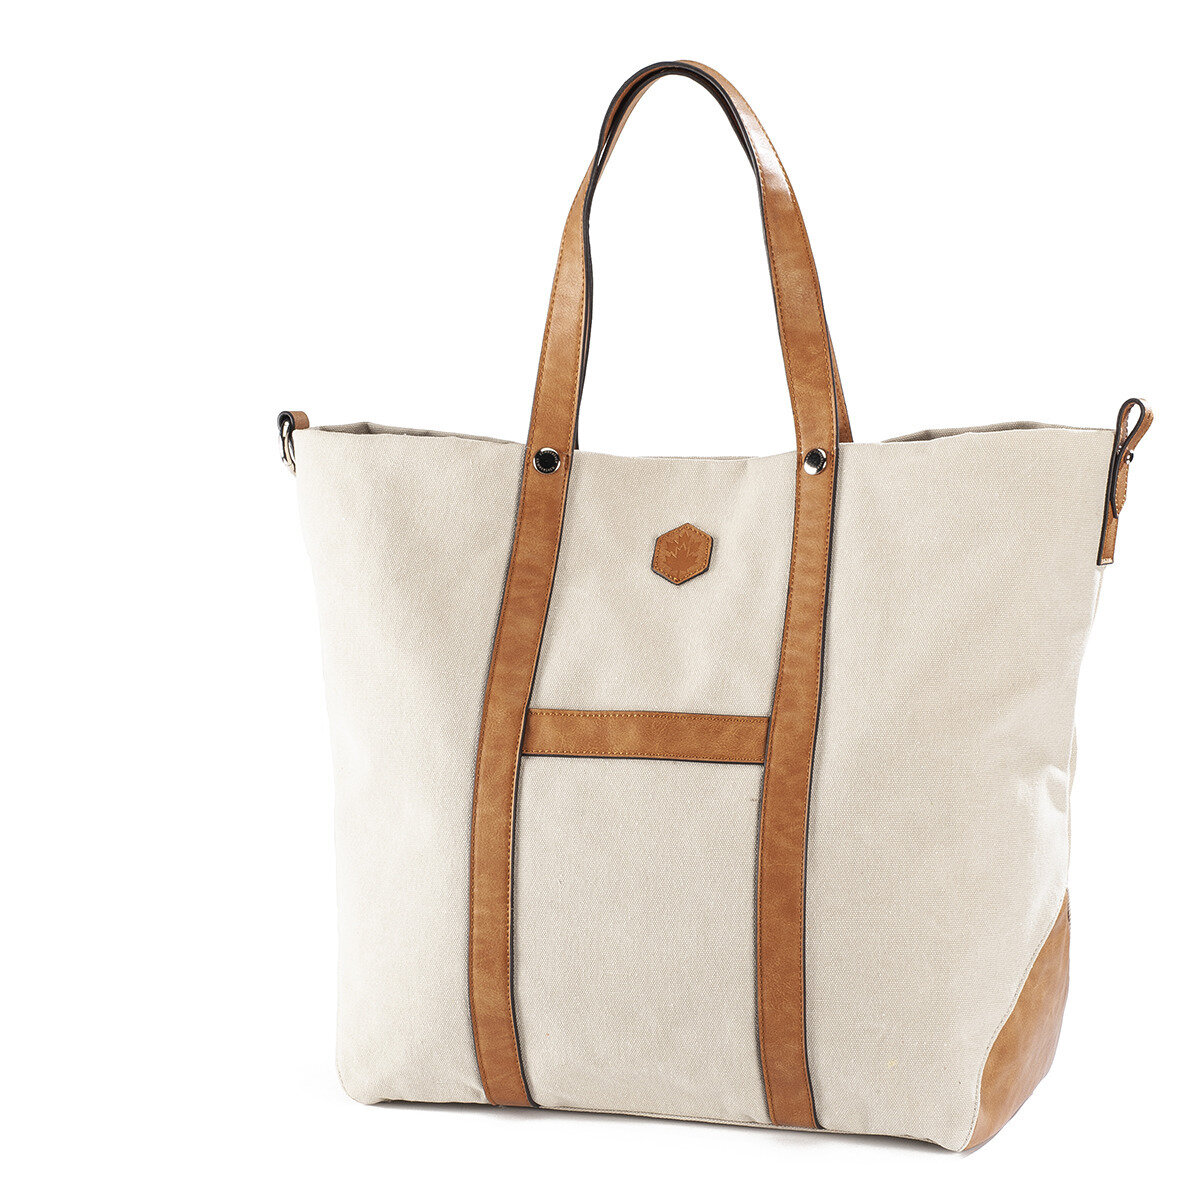 WPROJ.23 SAND Woman Shoulder bags